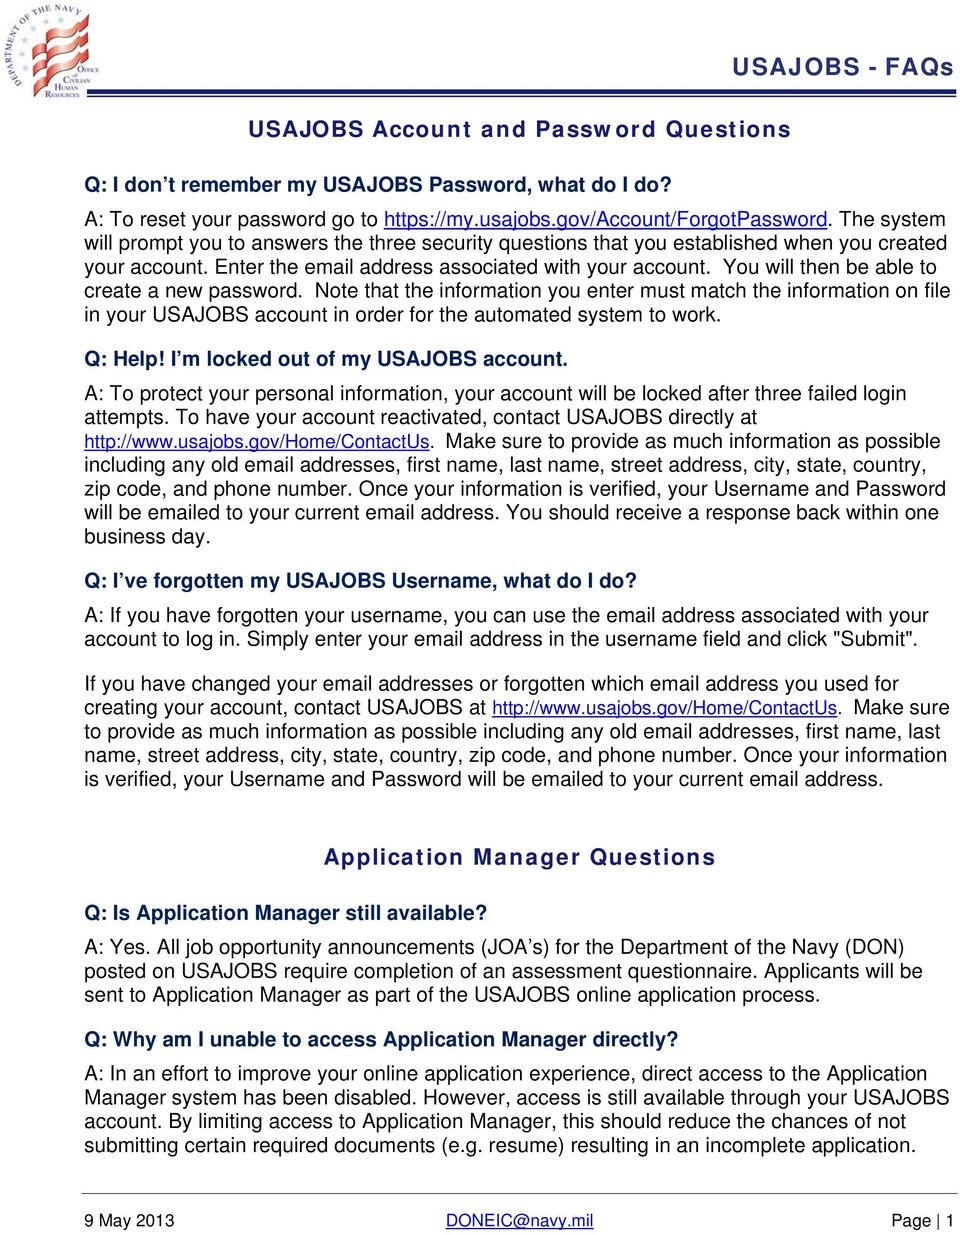 Usajobs Applicant Frequently Asked Questions Faqs Pdf Free